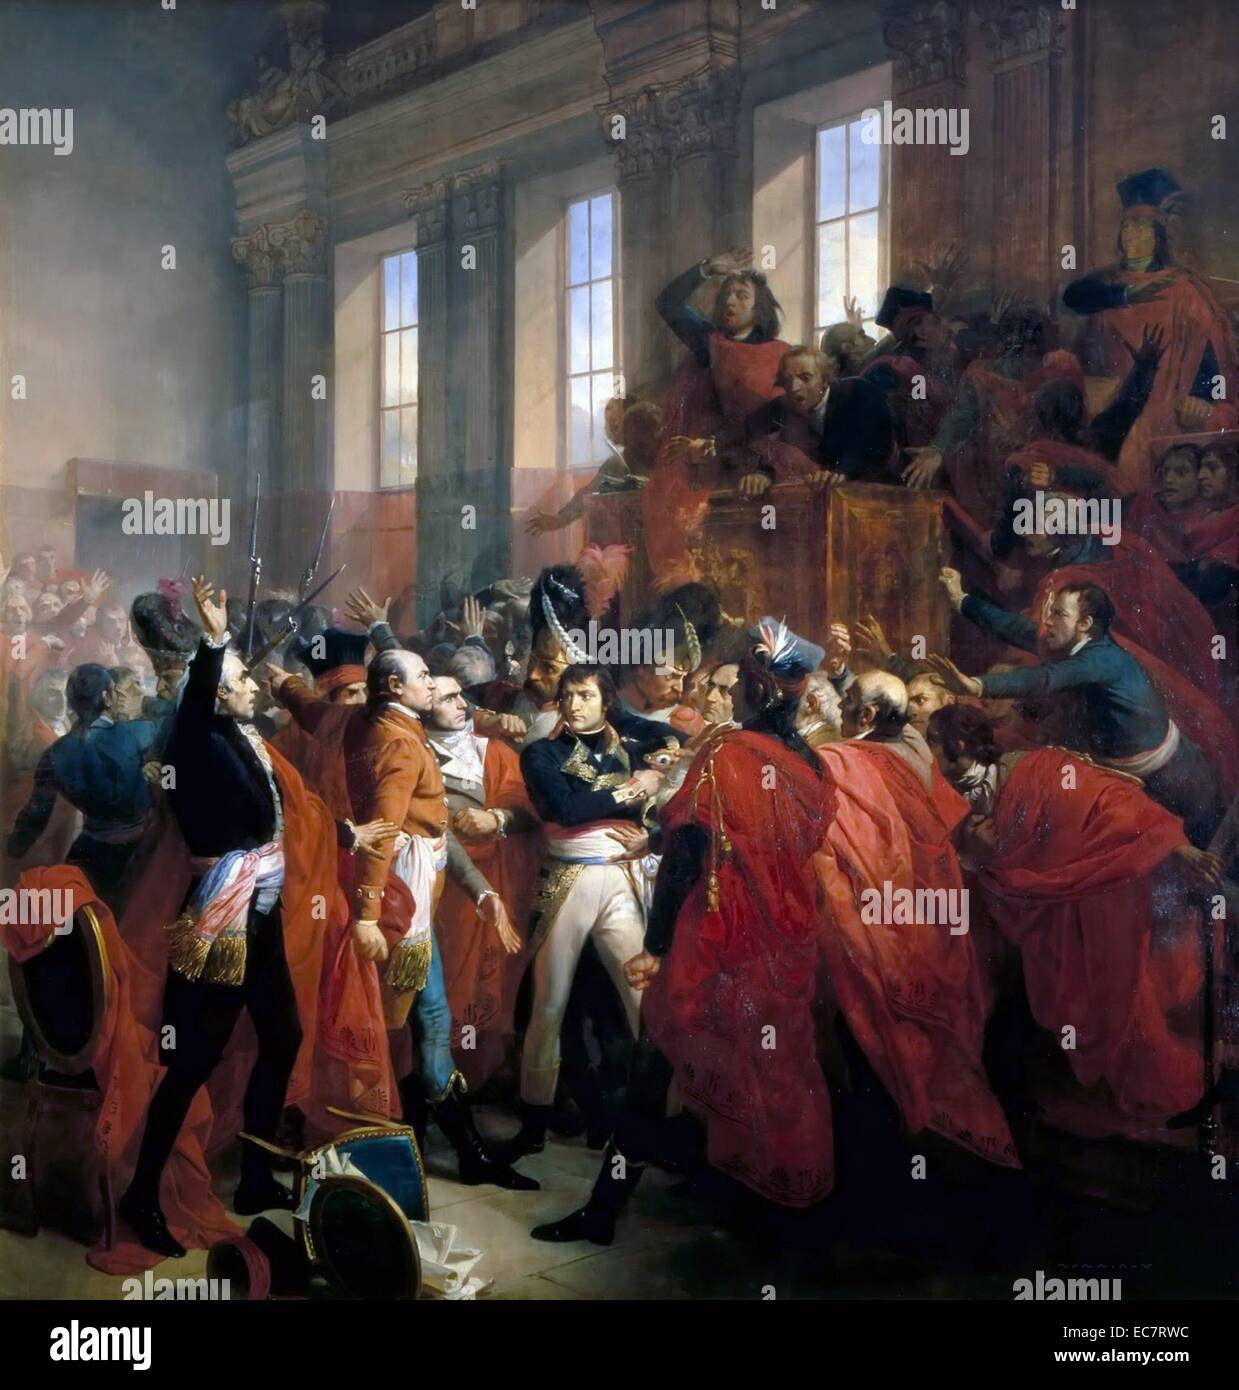 1840 Francois Bouchot's depiction of Napoleon Bonaparte at the Council of 500, in Saint Cloud, November 10 1799 - Stock Image